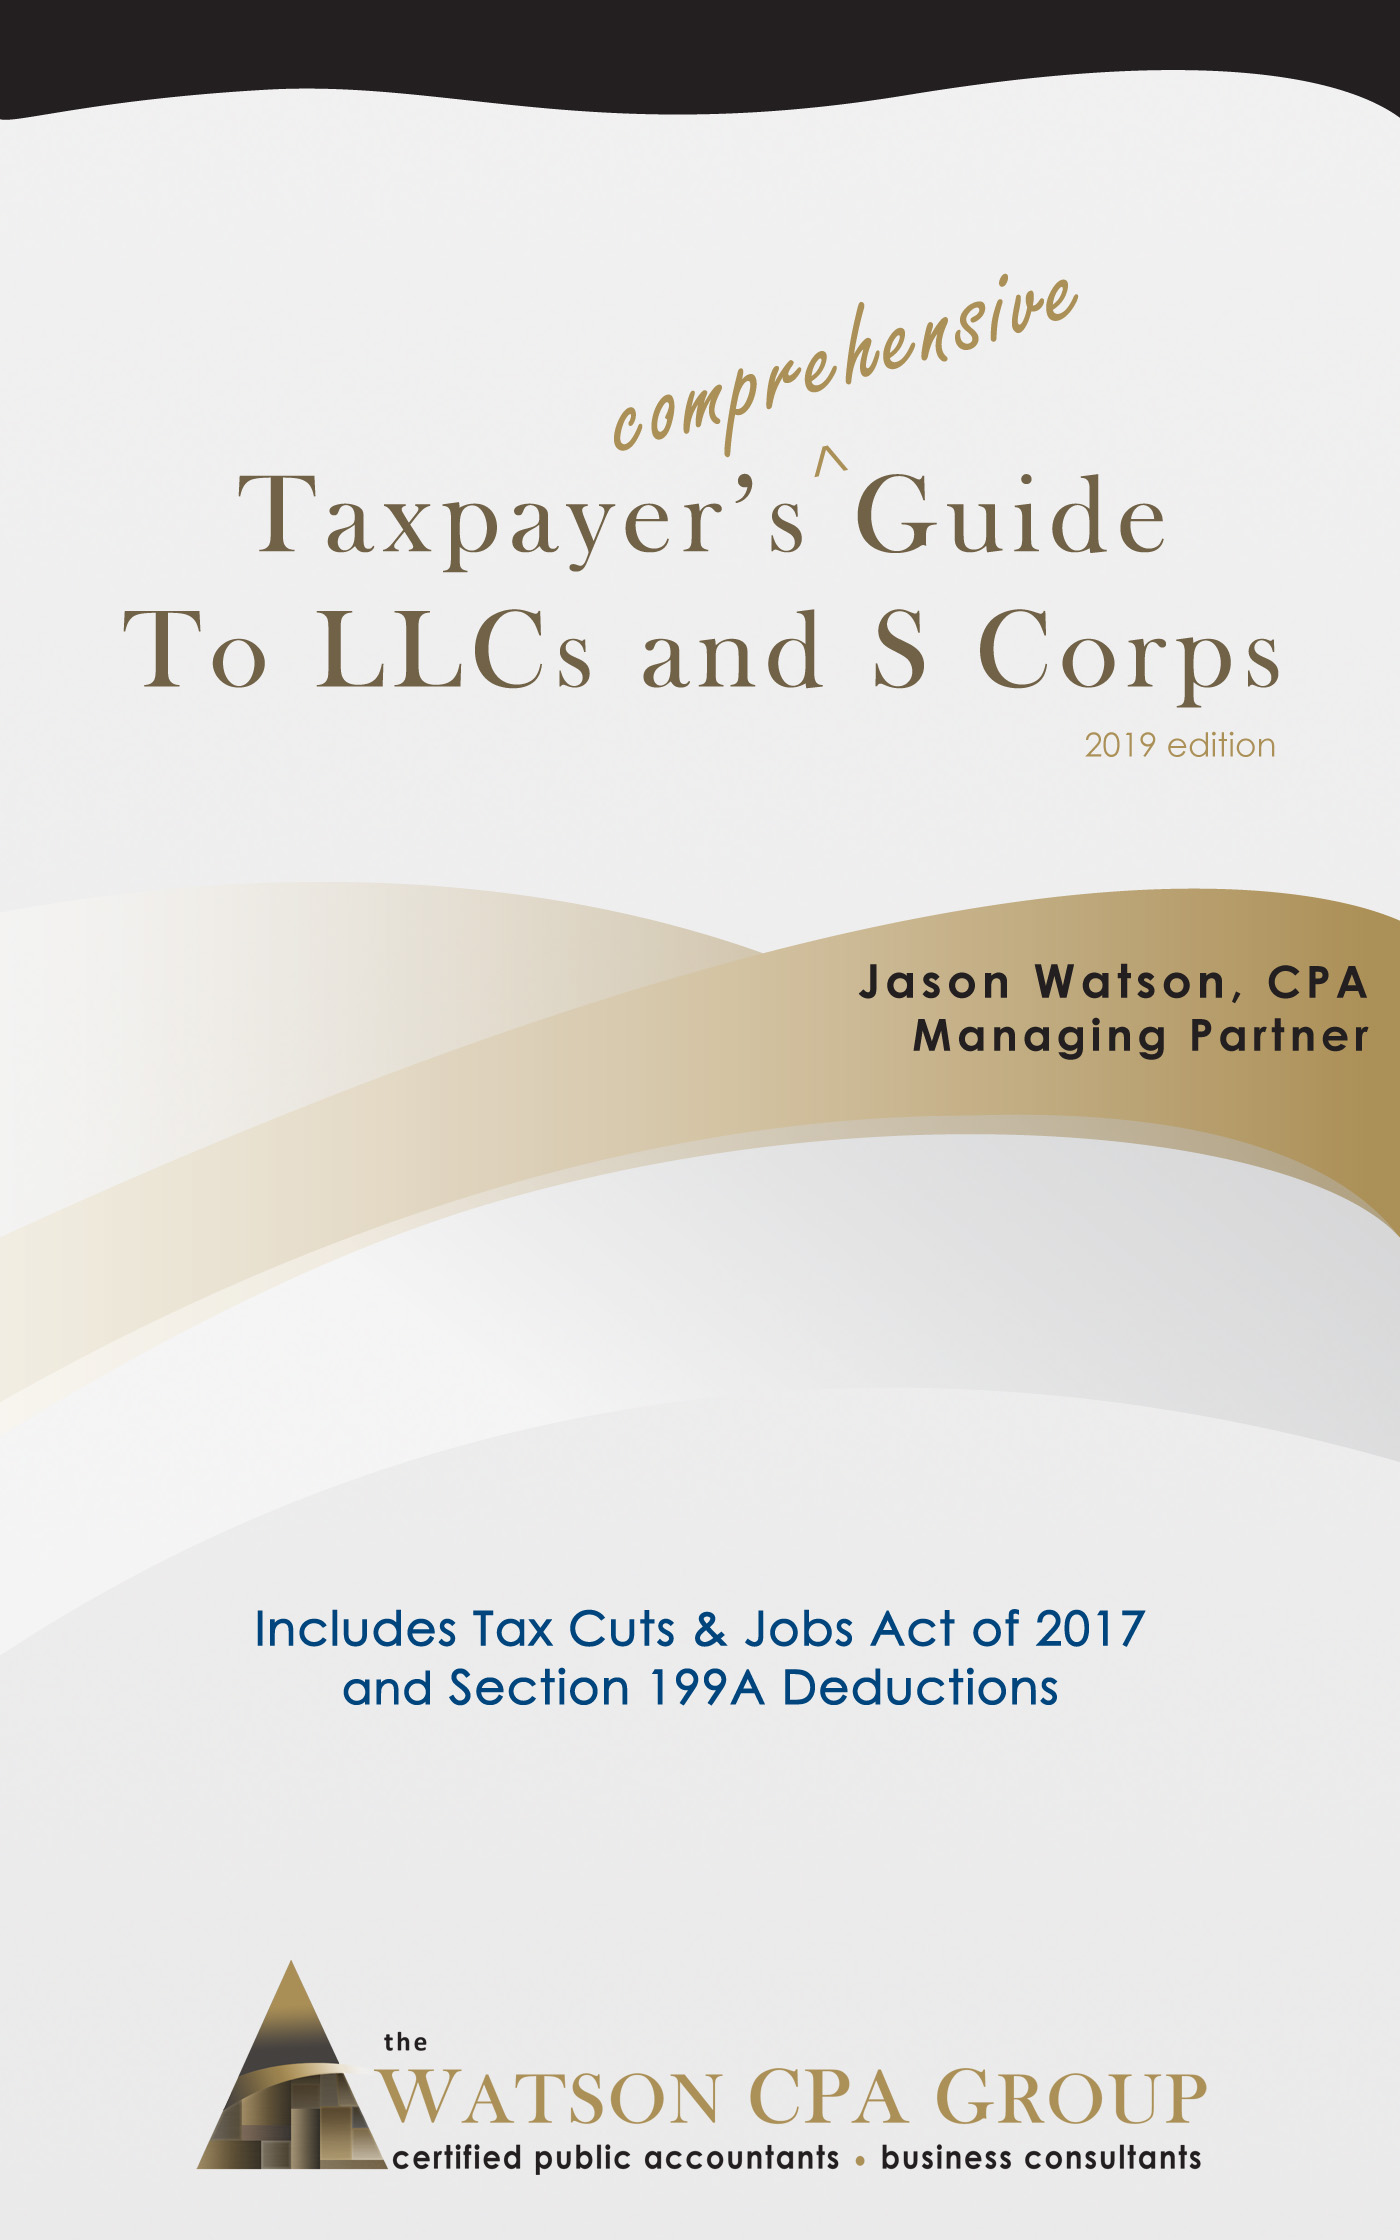 Qualified Business Income Deduction 2020.S Corp Benefits Avoid Self Employment Taxes Watson Cpa Group